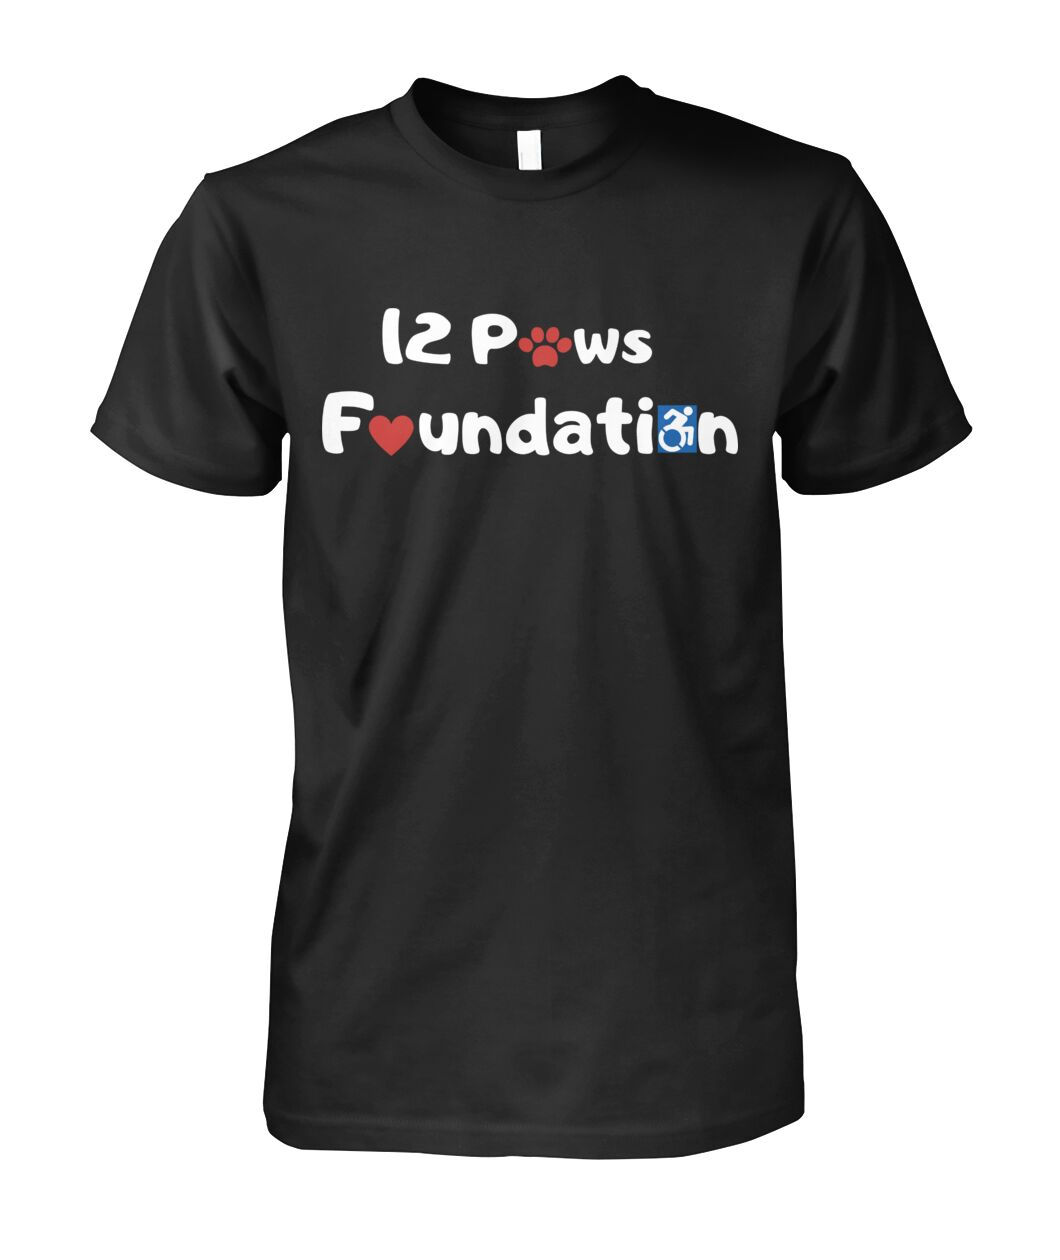 12 Paws Foundation Unisex Cotton